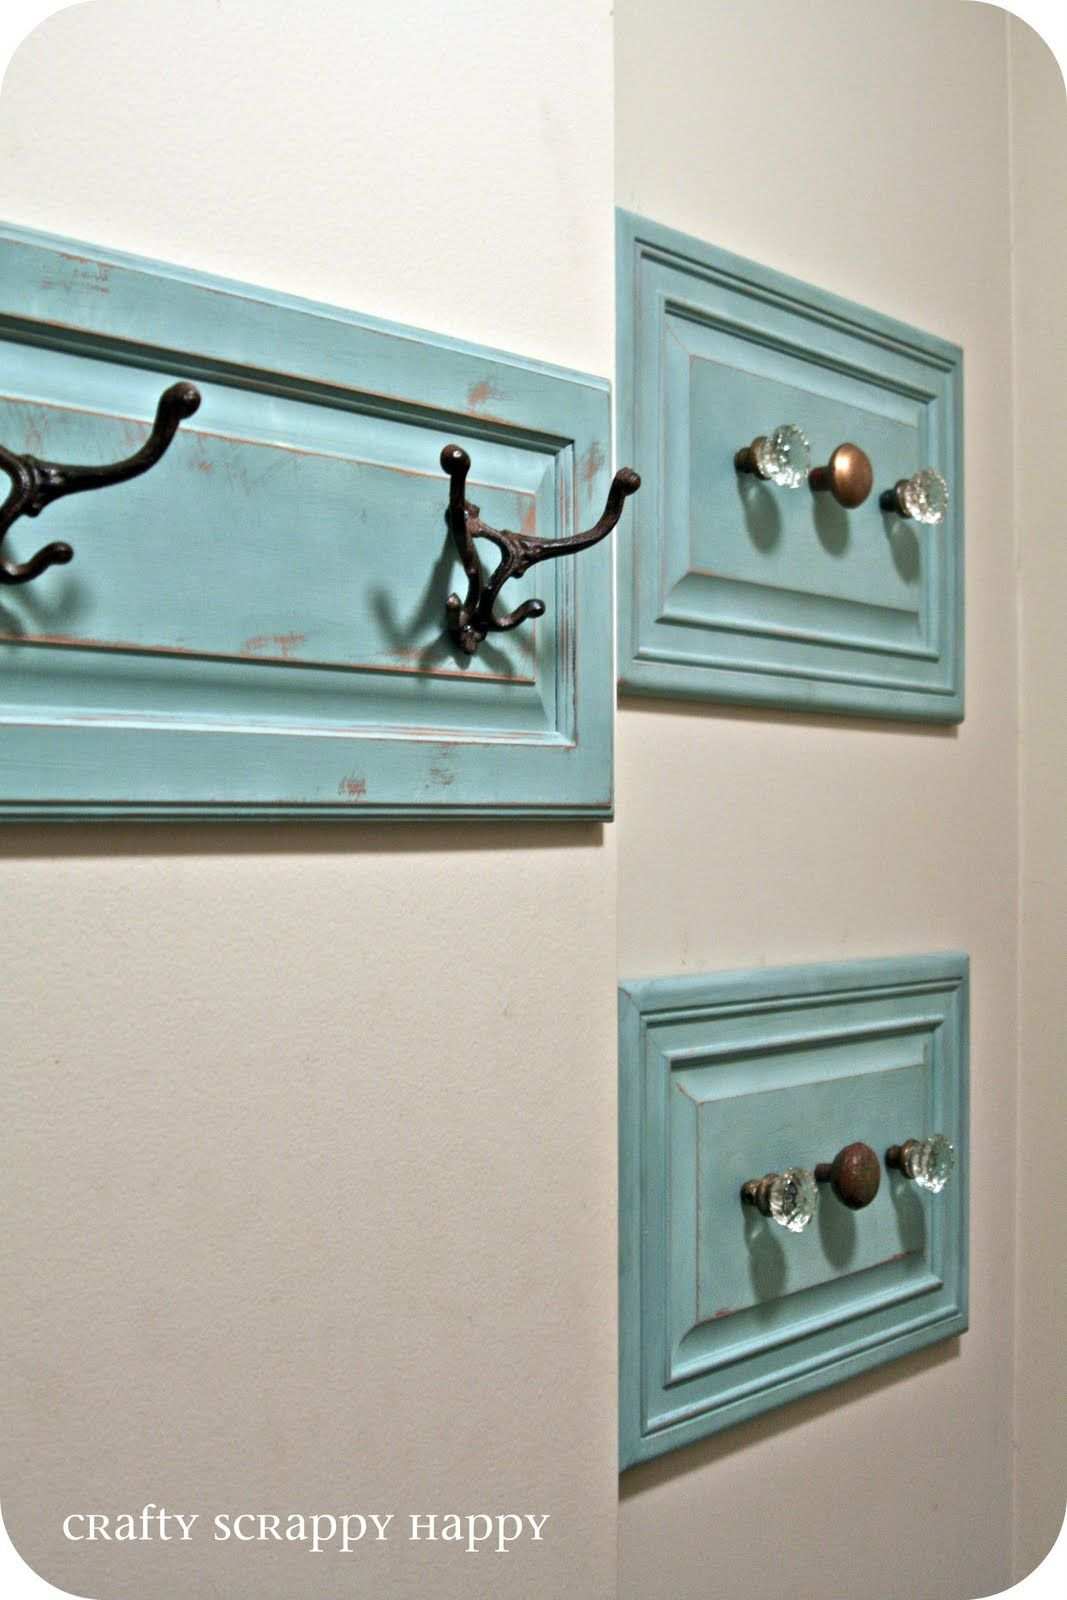 Coat Hanger Display Made From Recycled Cabinet Doors Diy Home Decor Used Cabinets Diy Furniture